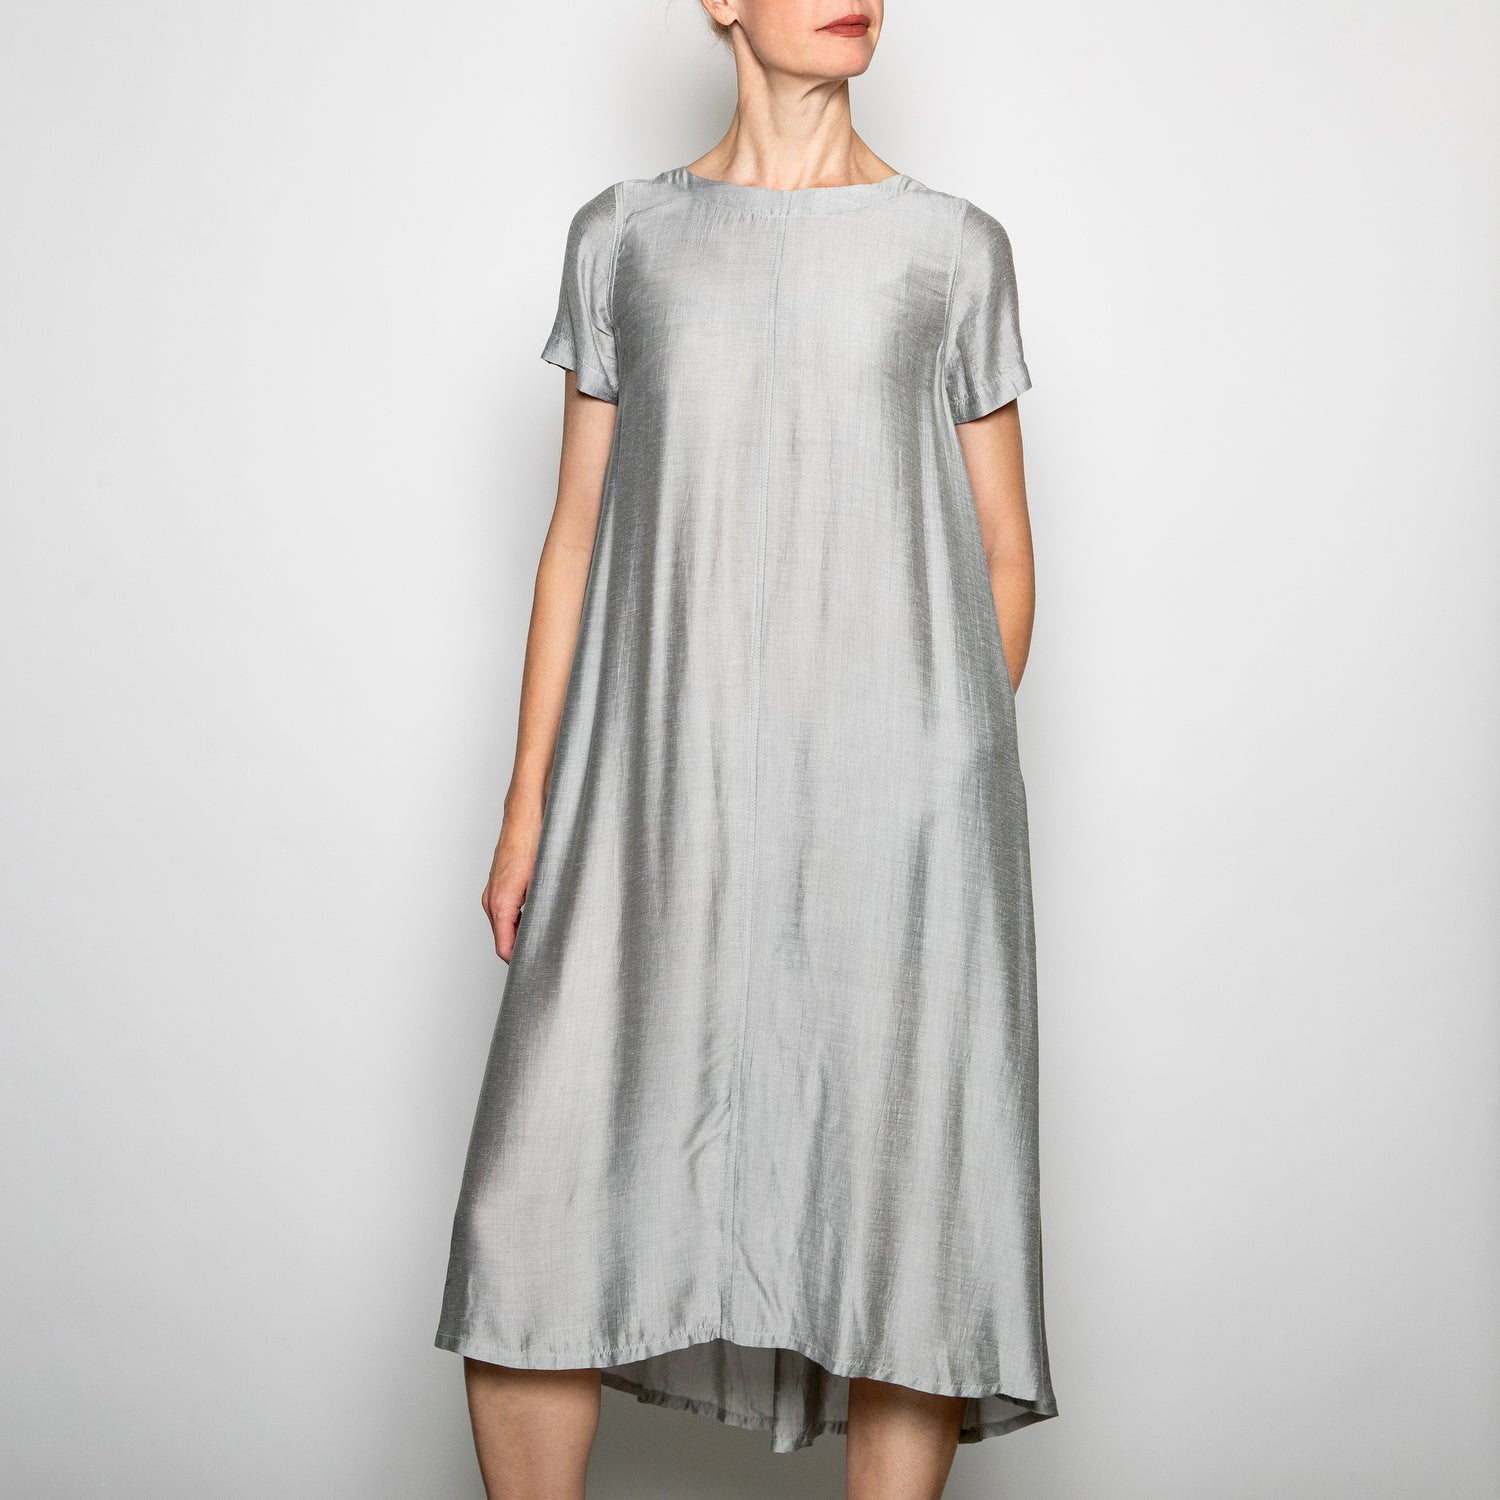 Annam Ami Short Sleeve Dress-AMI - C001-Gray-S/M